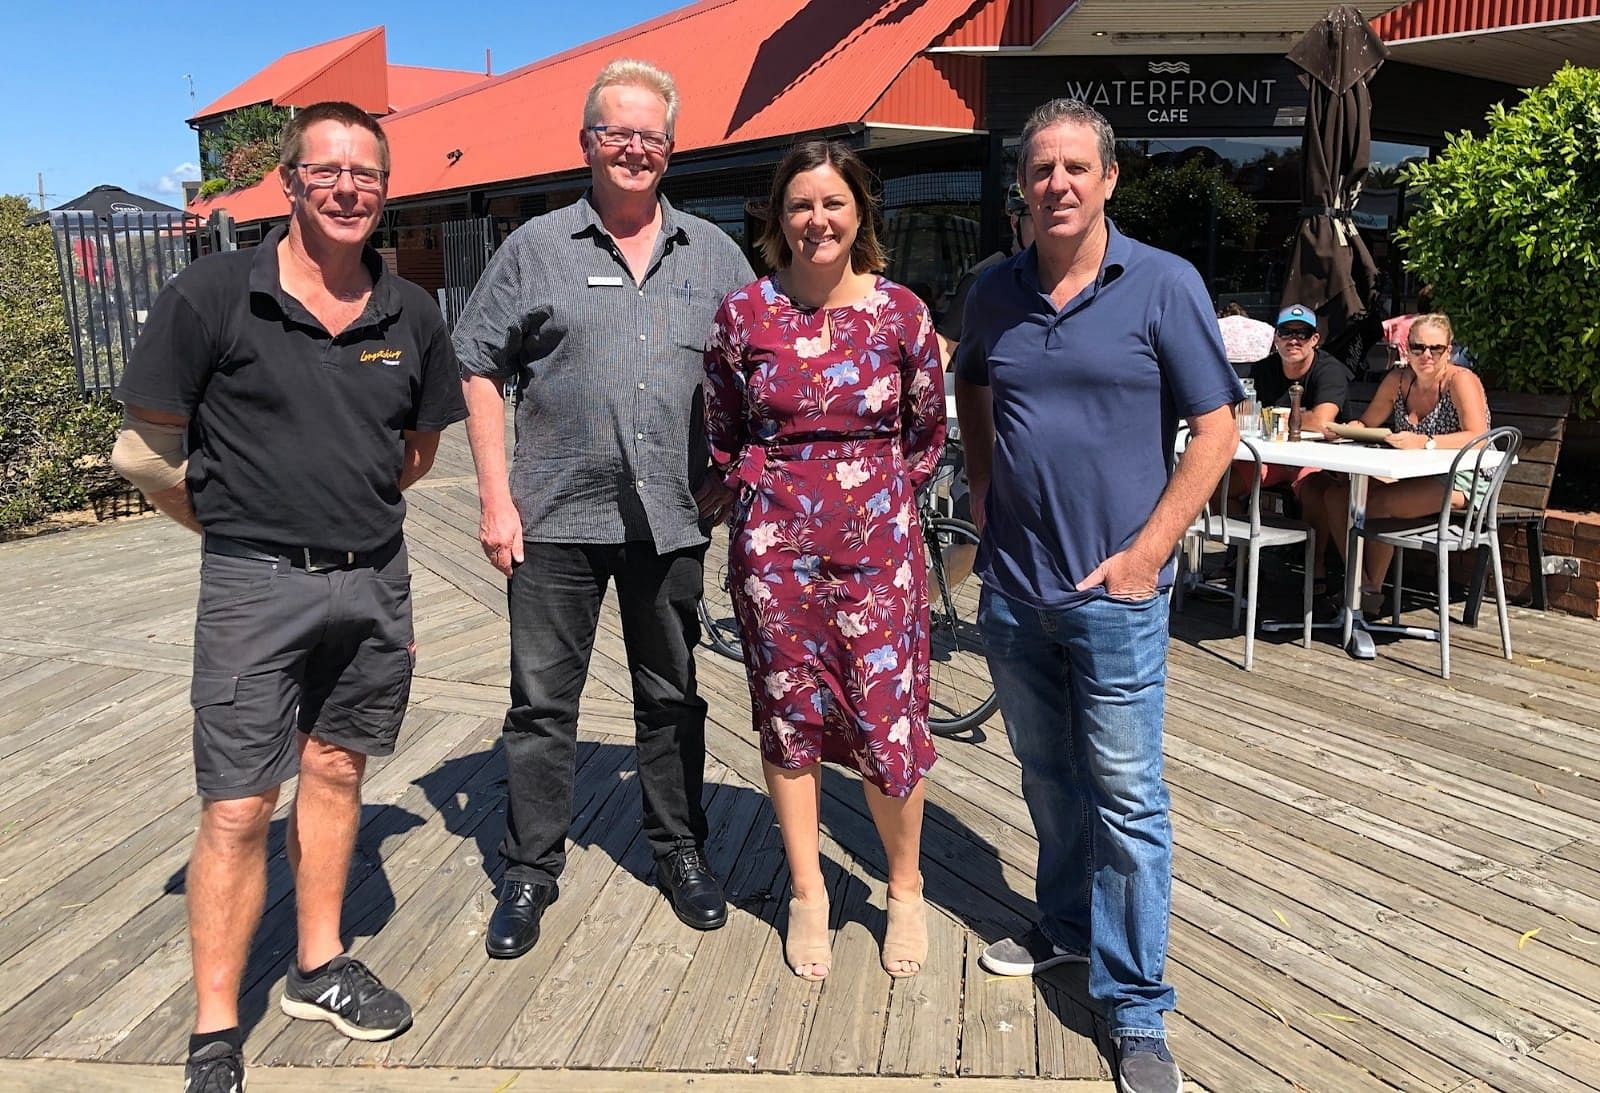 At the launch of the federal and New South Wales government's bushfire business package, from left to right, Peter Caldwell from Longstocking Brewery, Chris Nicholls from Merimbula Visitor Information Centre, Bega Valley Mayor Kristy McBain and President of the Merimbula Chamber of Commerce Nigel Ayling.